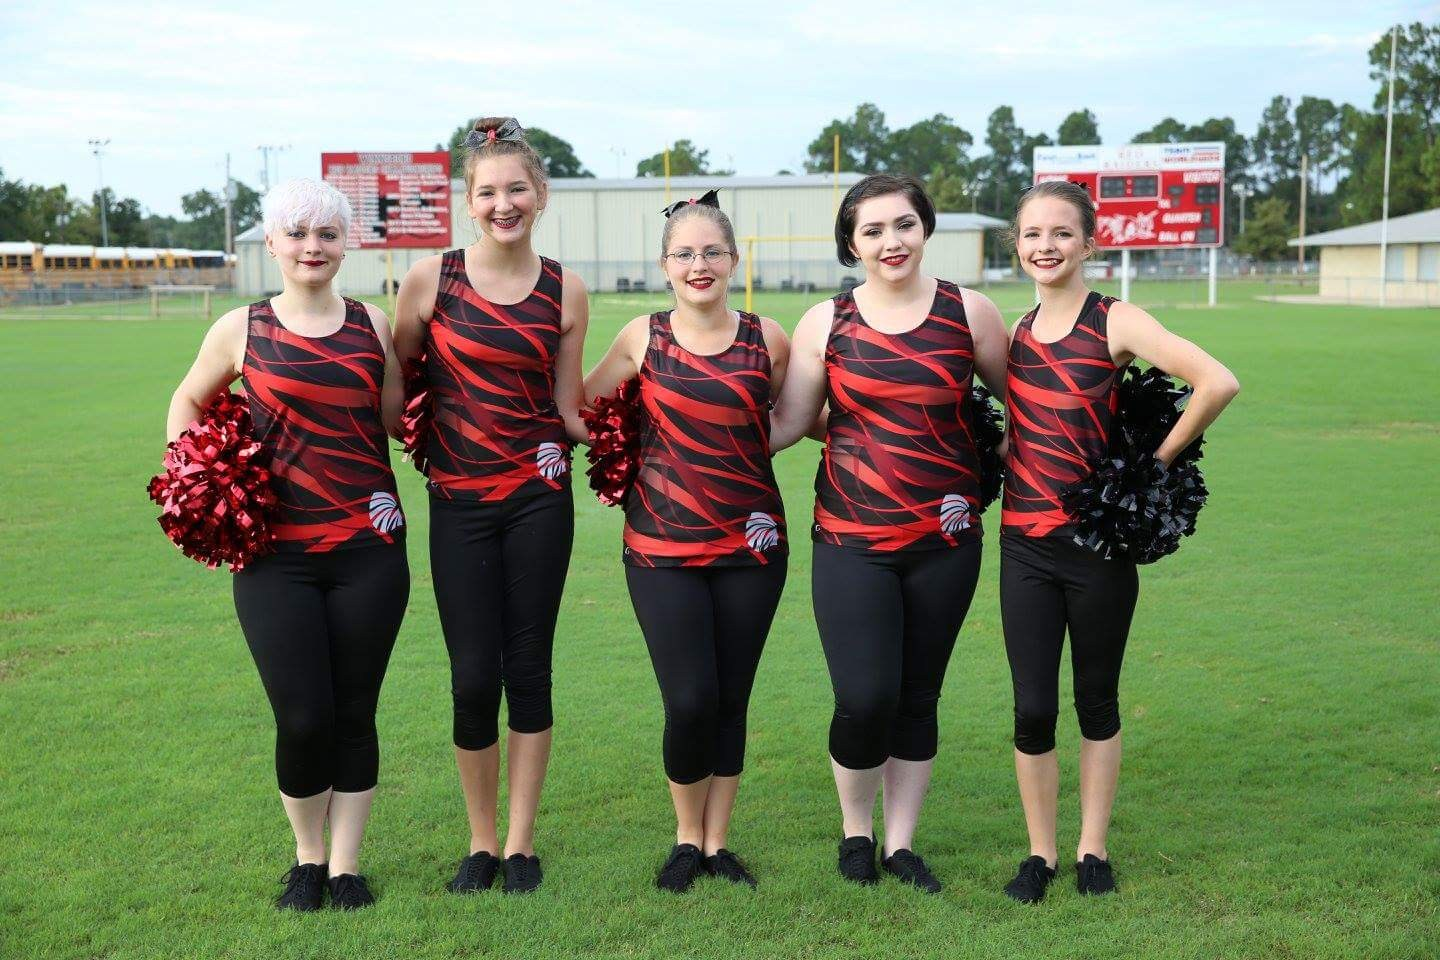 2017-2018 Raiderette Officers